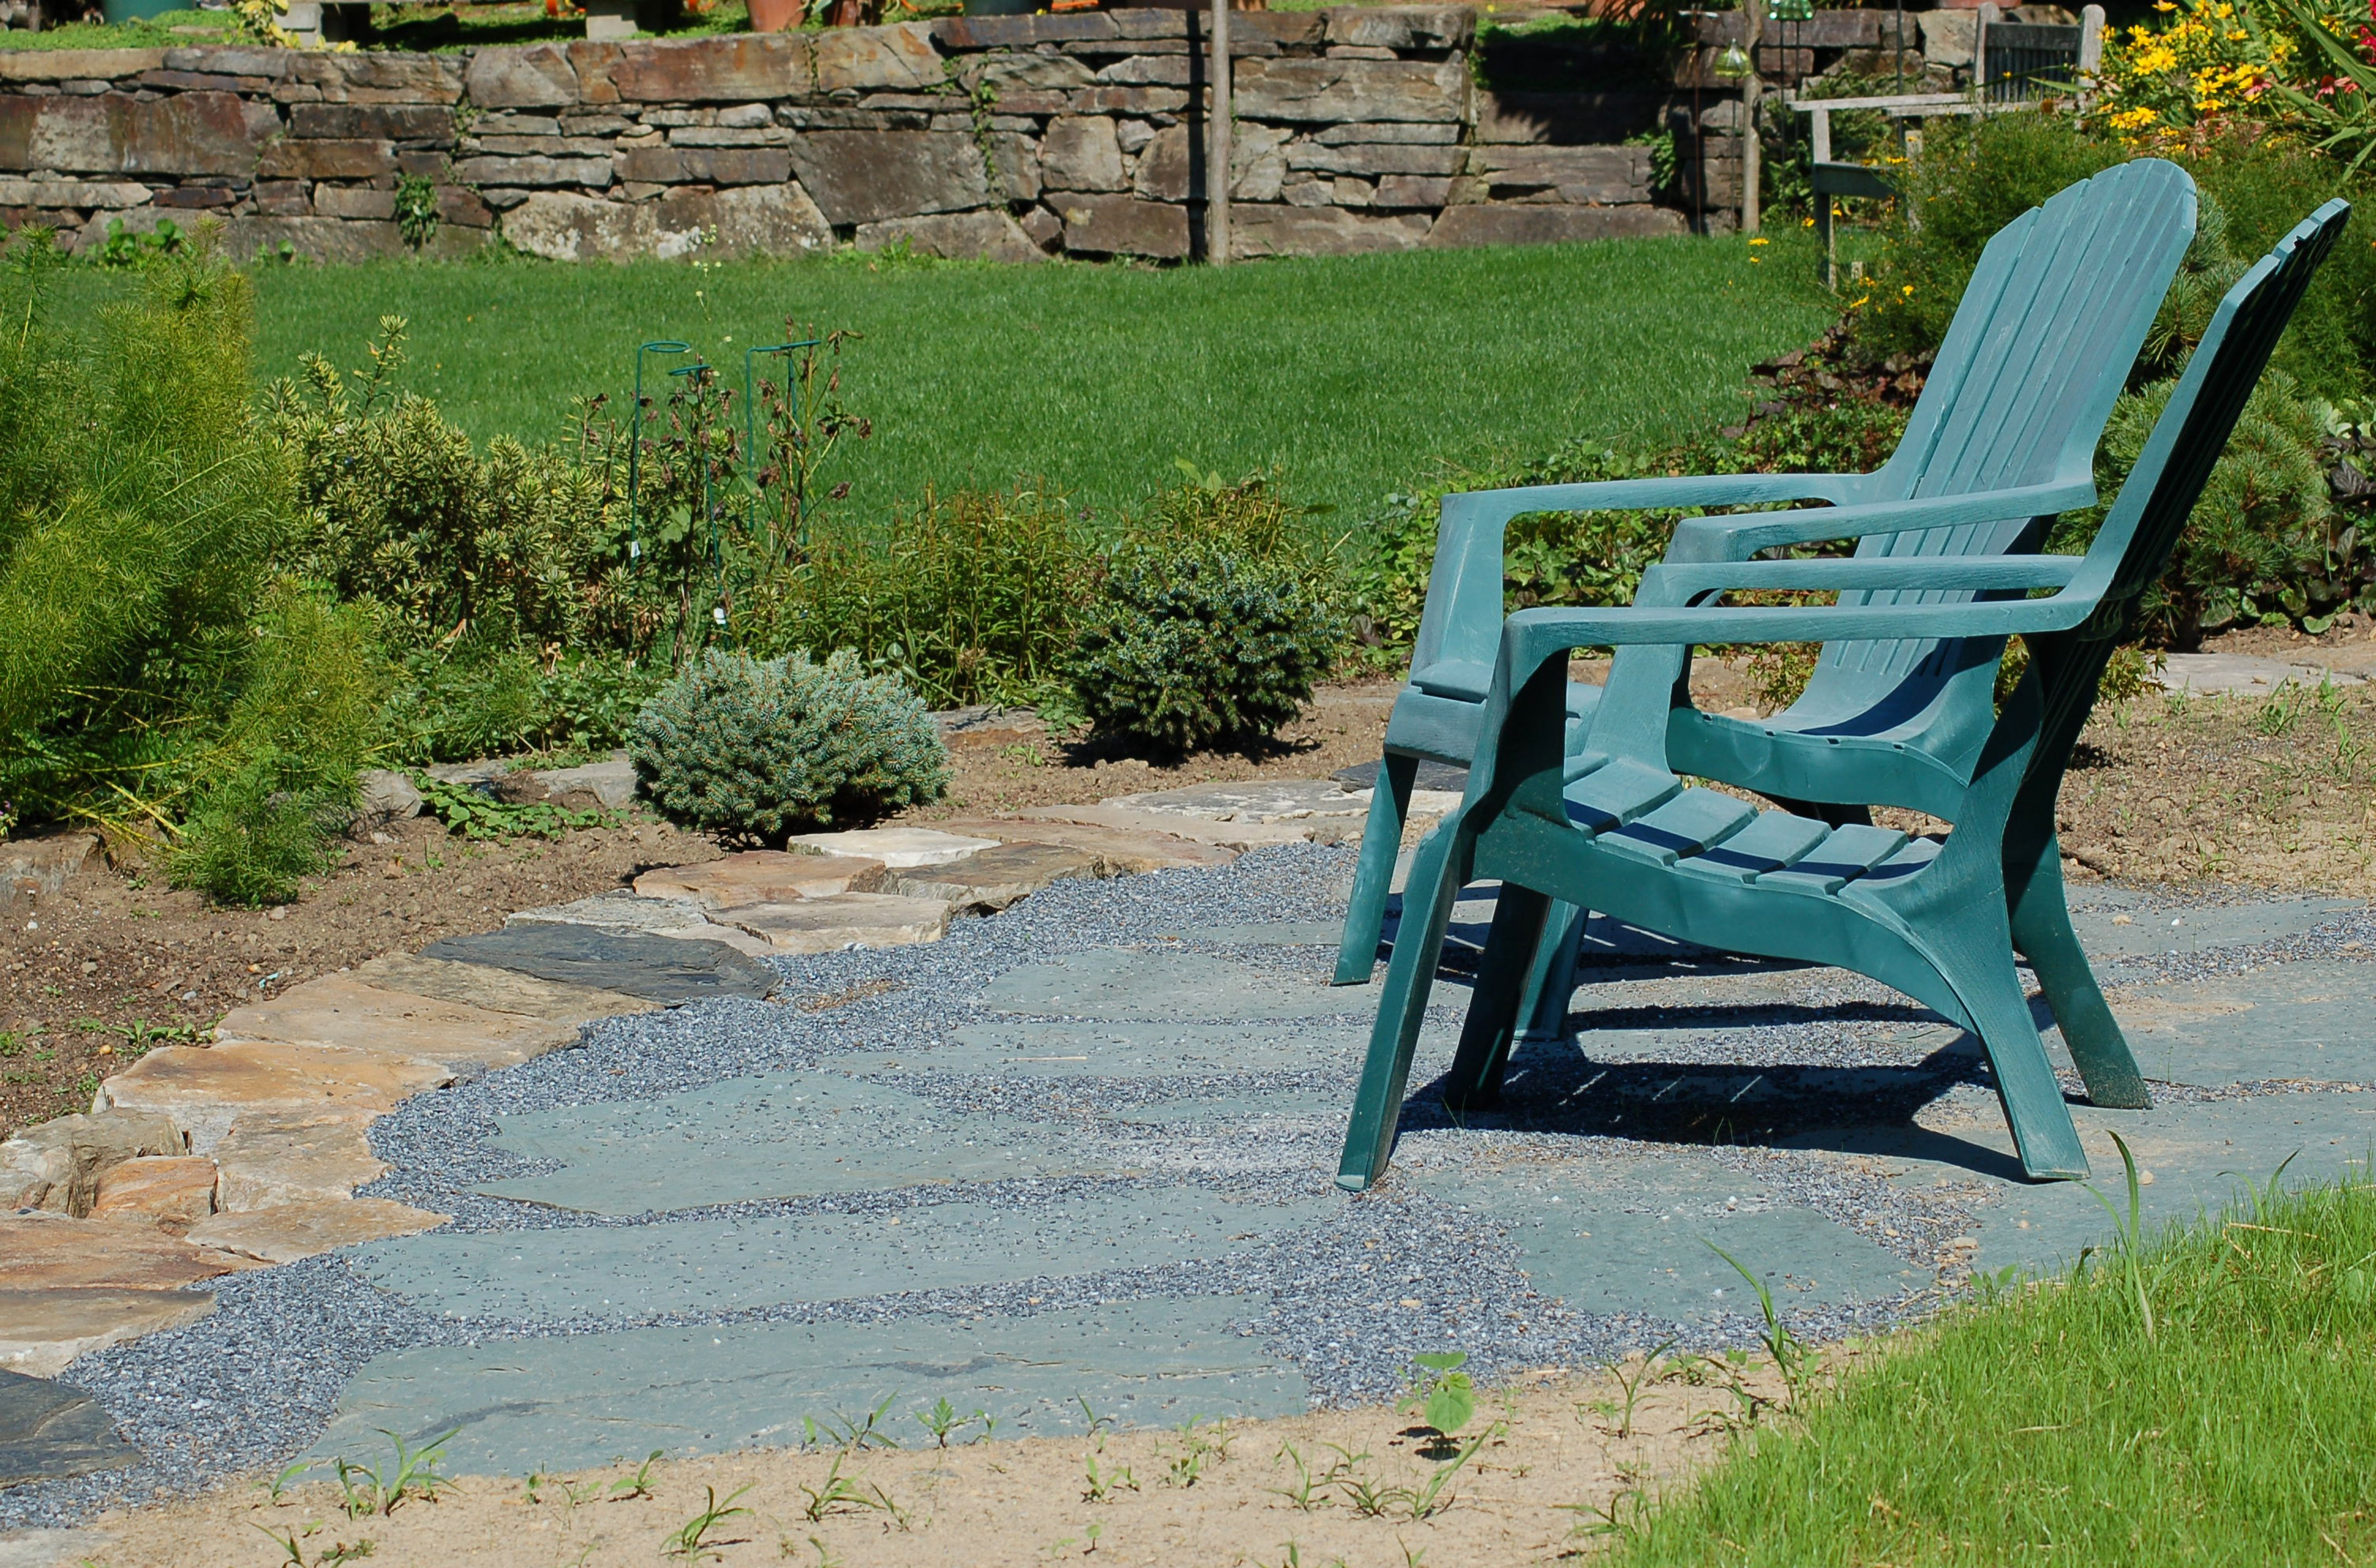 Laying A Flagstone Patio: Instructions, Supply List